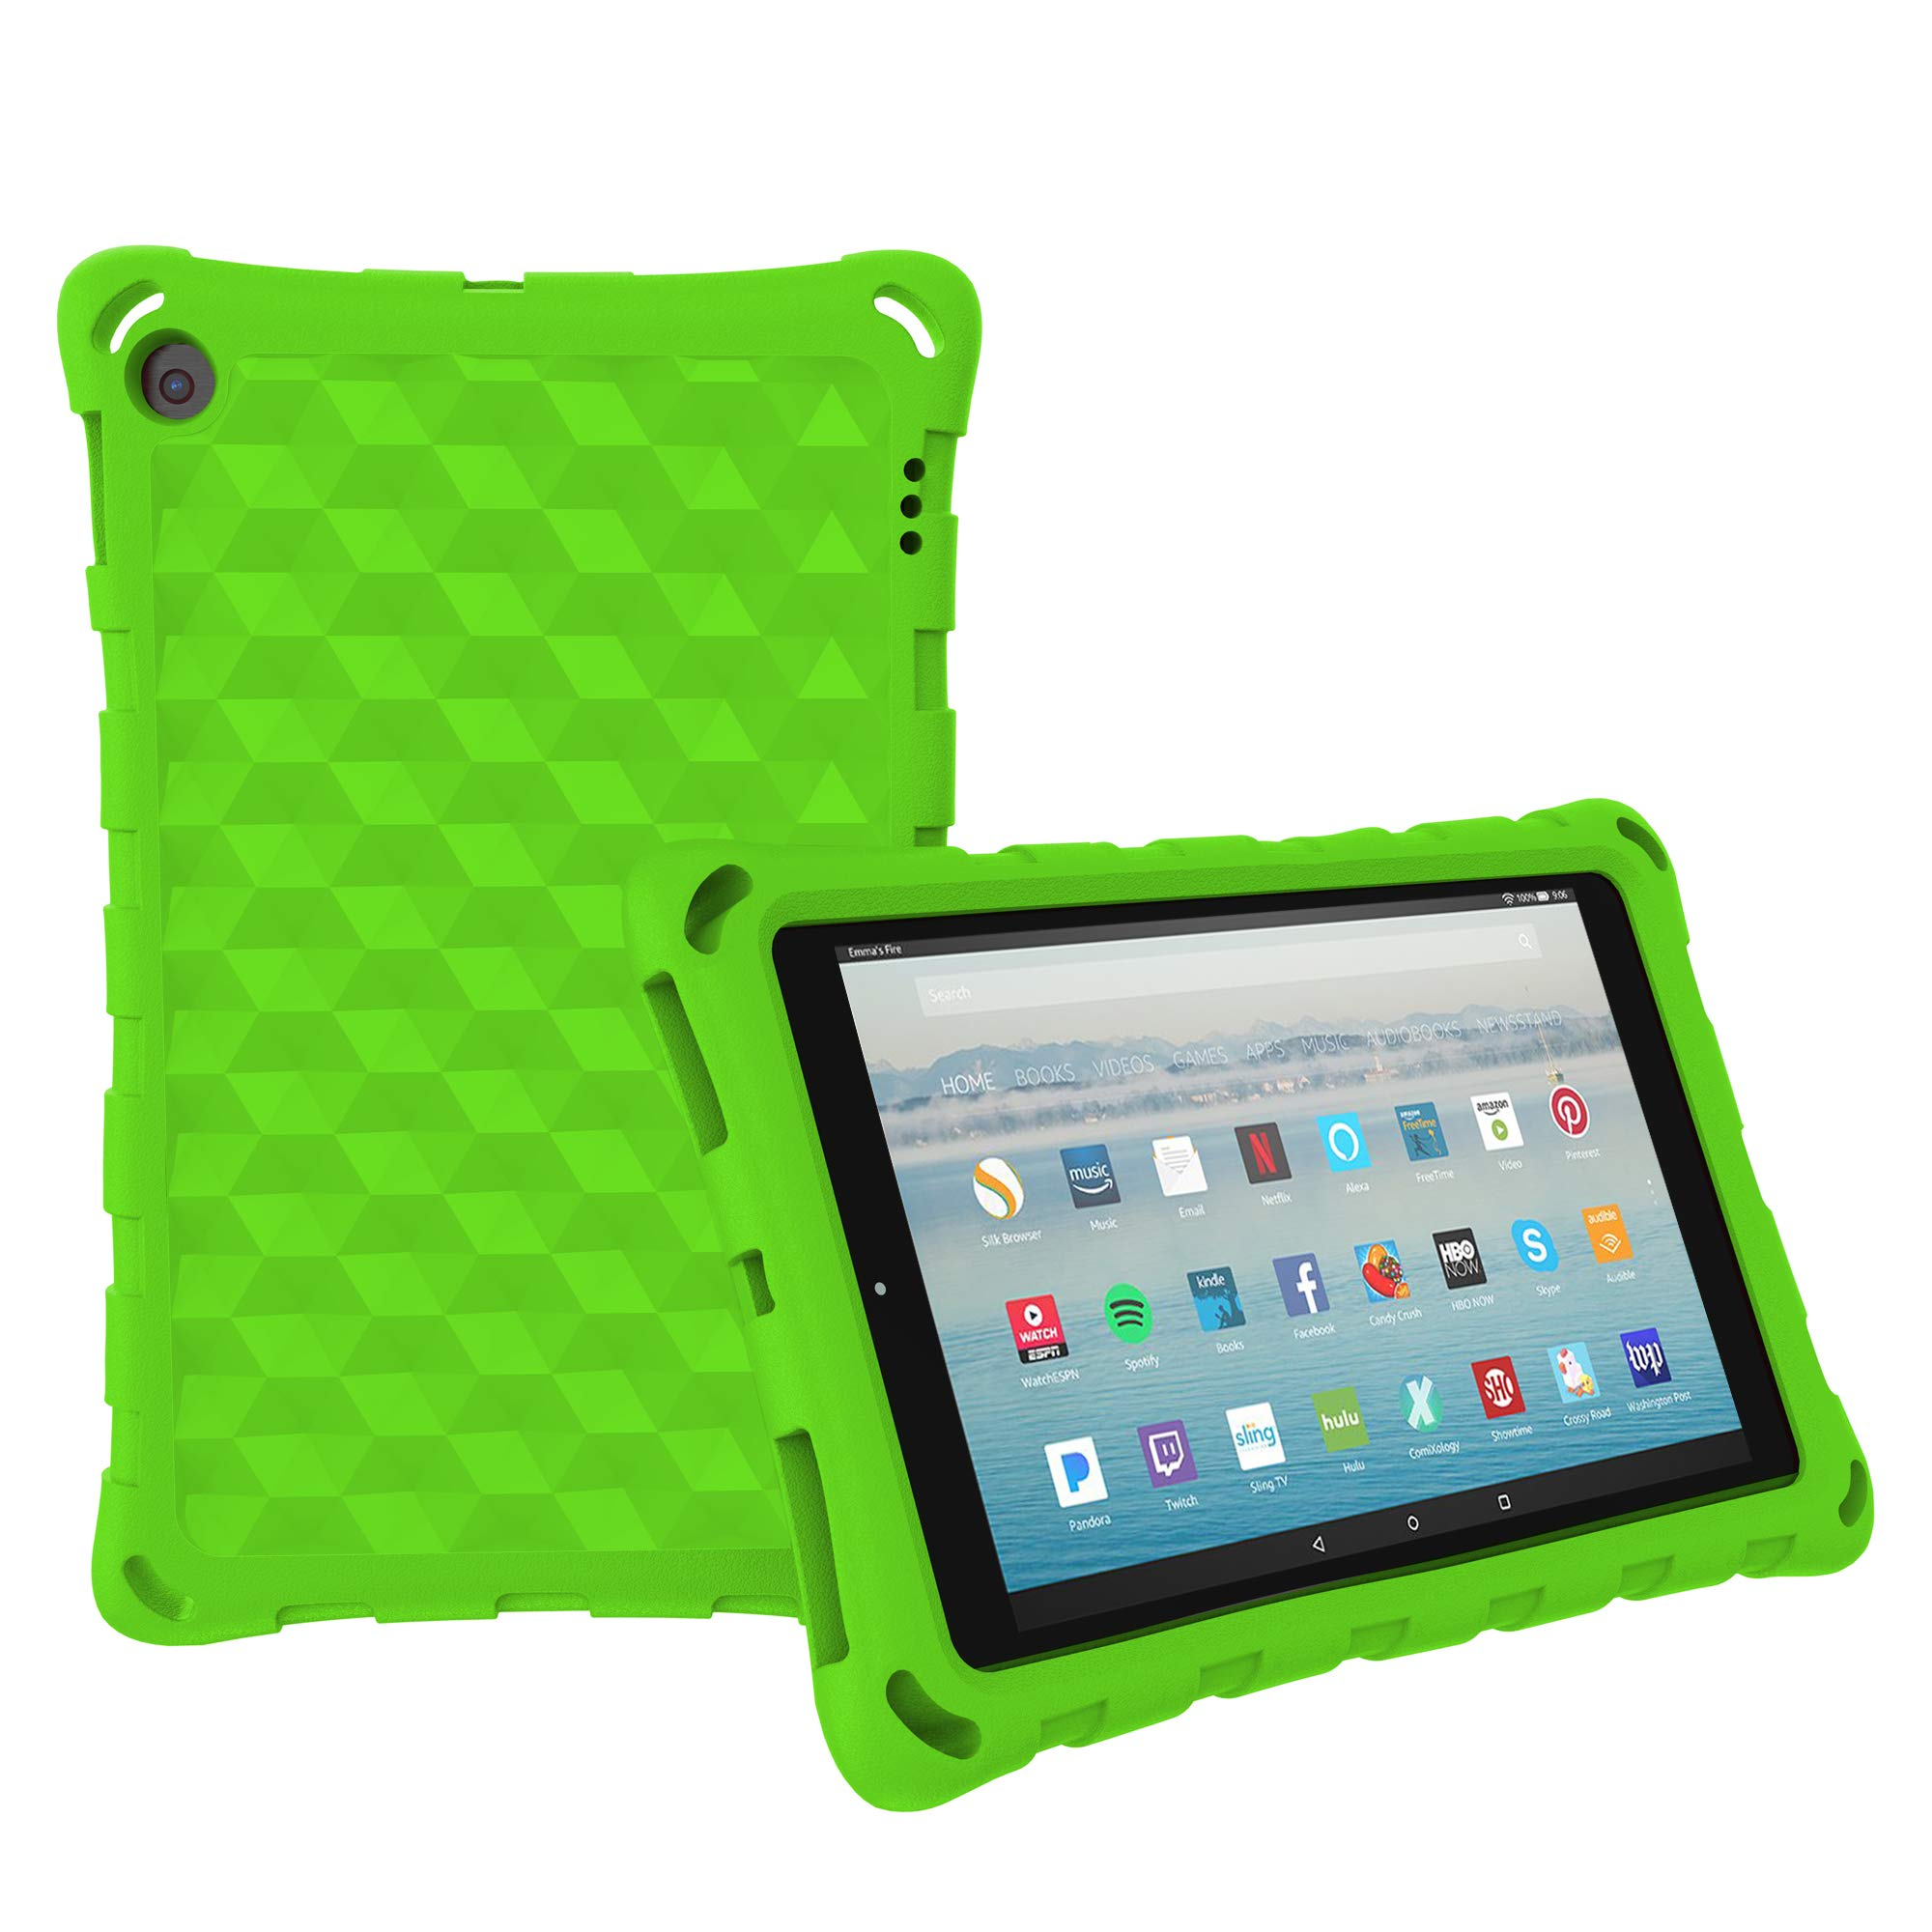 Mr.Spades 10.1 Inch Tablet Case (Compatible 5th/7th/9th Generation, 2015/2017/2019 Release) - Green